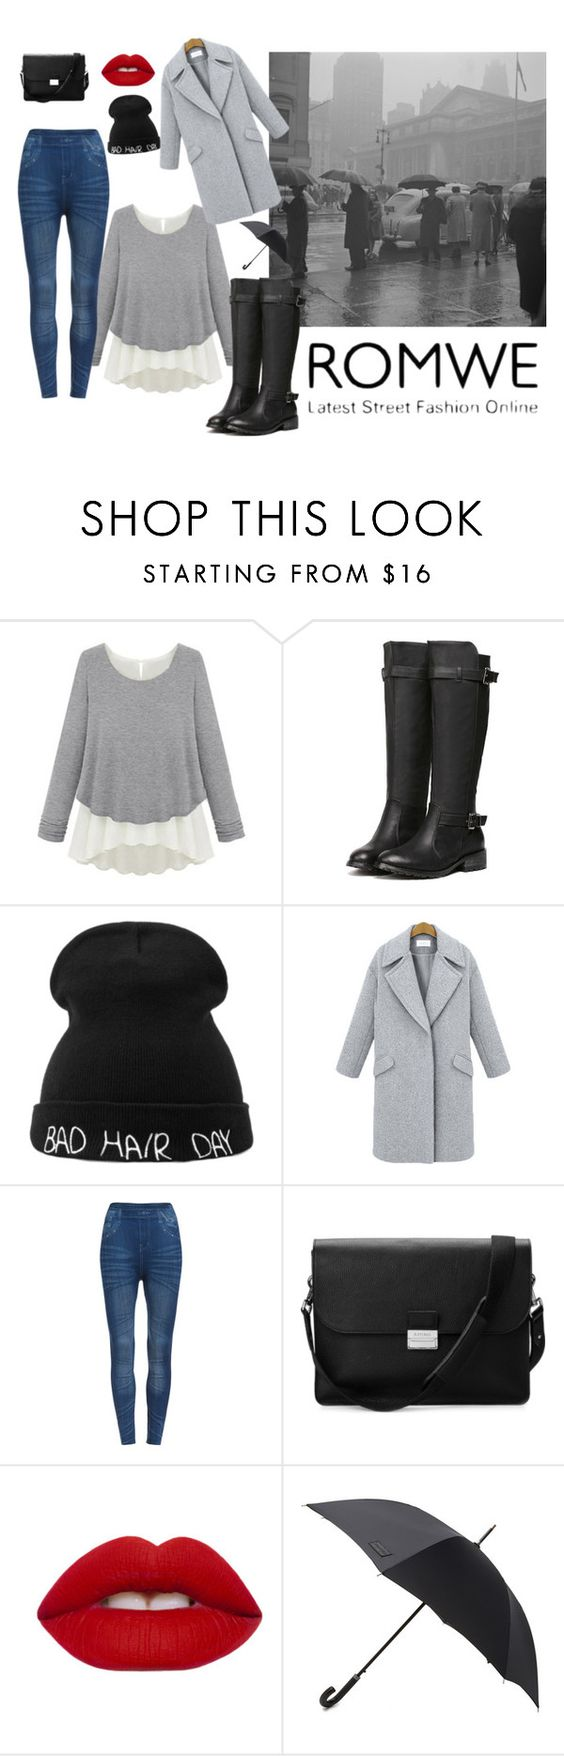 """""""rainy days are coming,let's say hello"""" by nylover-998 ❤ liked on Polyvore featuring Aspinal of London, Lime Crime and Hunter"""